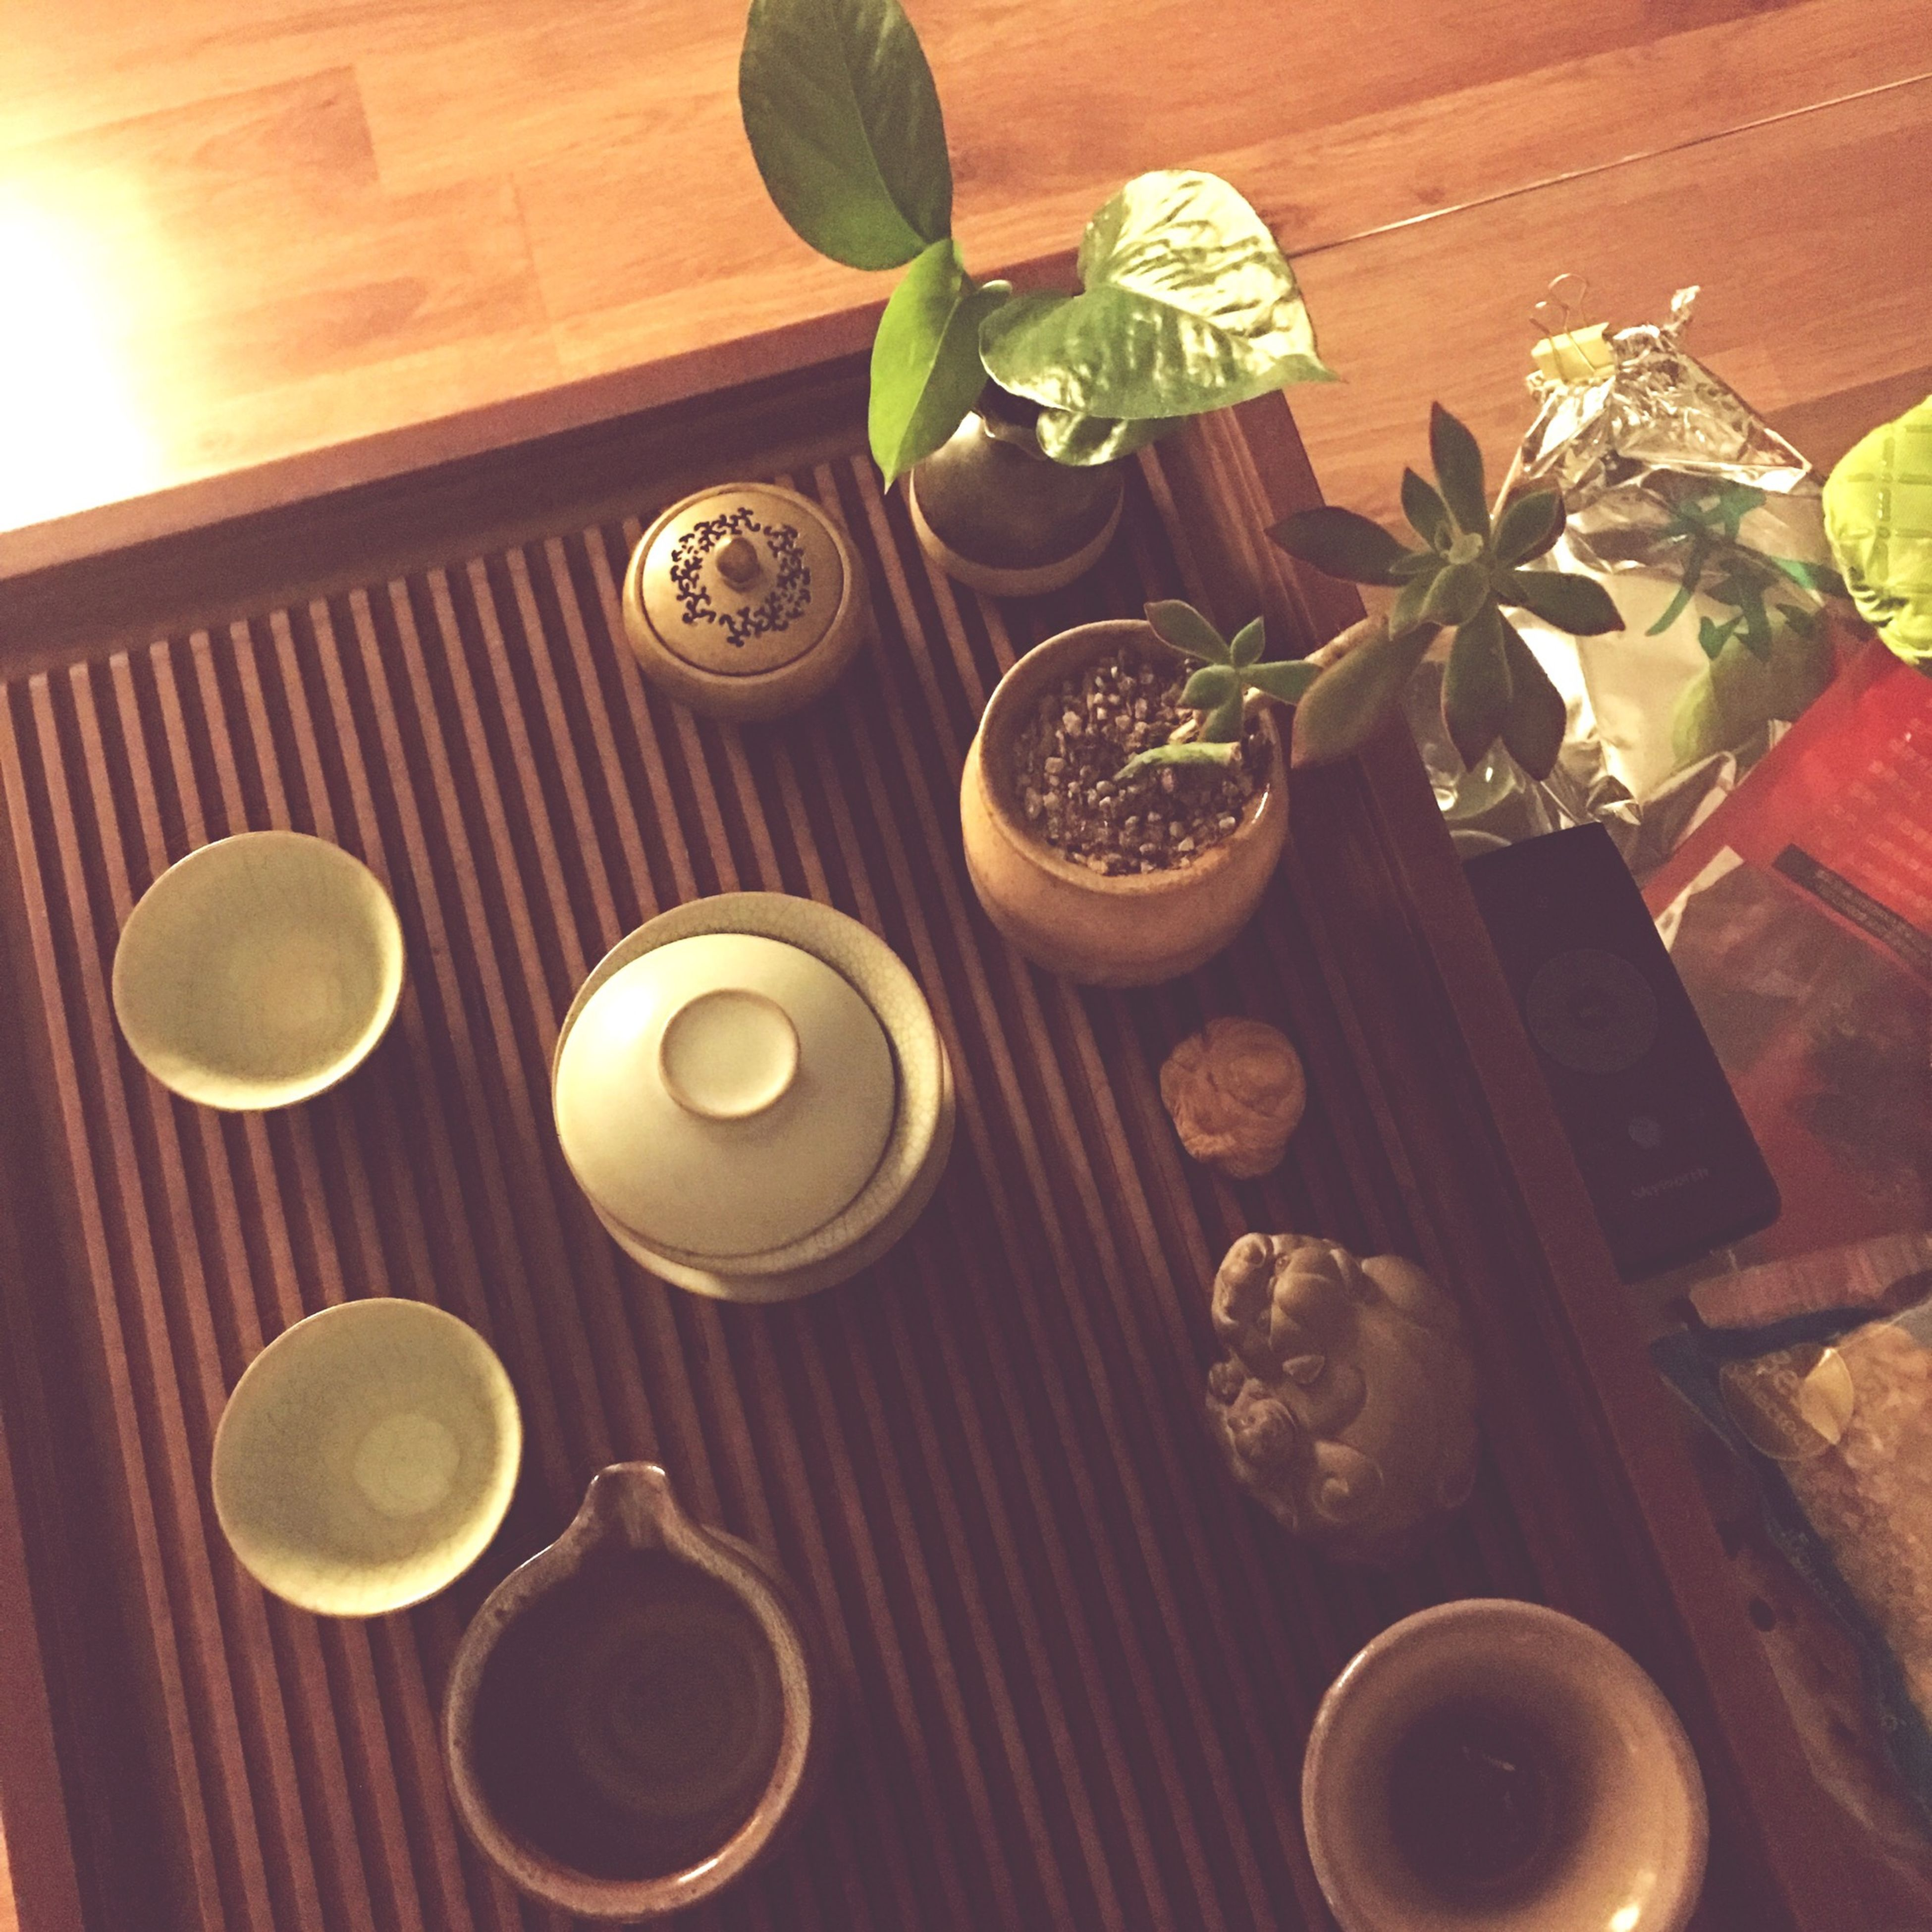 indoors, table, wood - material, freshness, still life, high angle view, plant, potted plant, close-up, leaf, no people, home interior, vase, wooden, growth, flower, sunlight, food and drink, day, variation